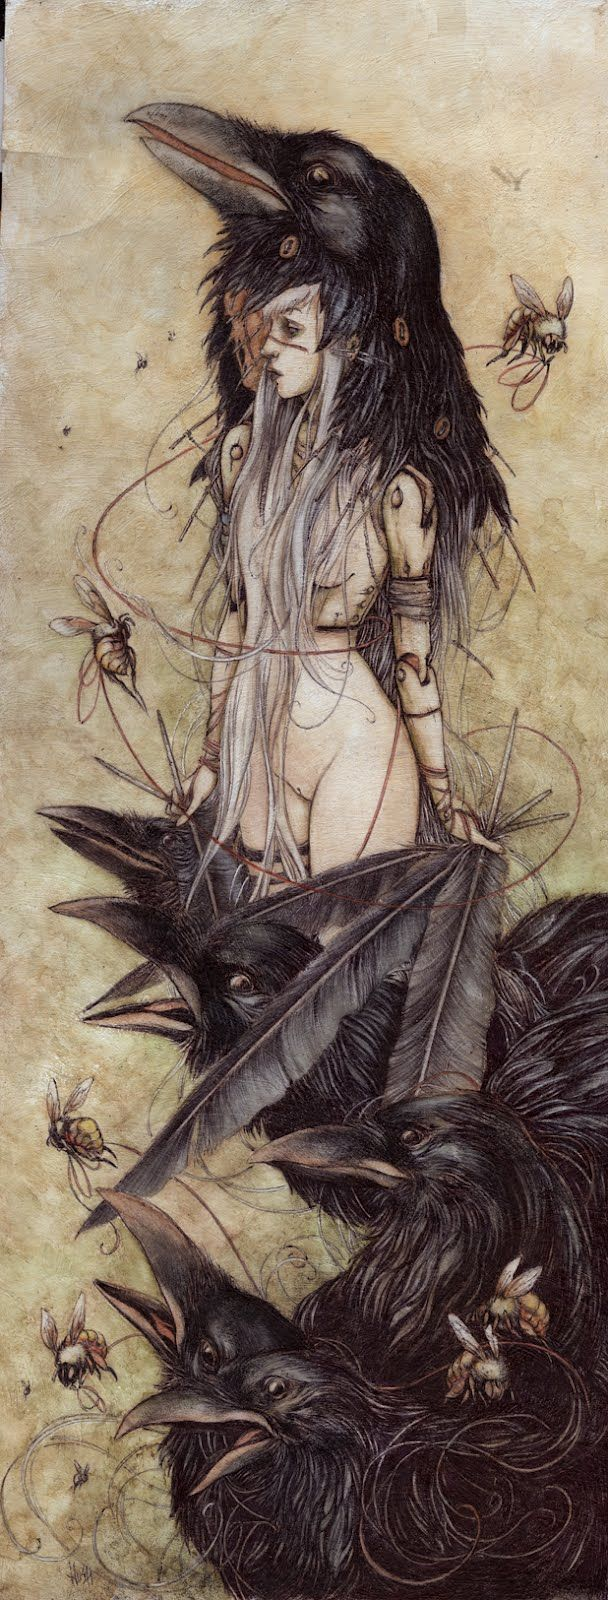 "Jeremy Hush ""Crow Girl""Tattoo Ideas, Jeremyhush, Skin Art, Jeremy Hush, The Crows, The Ravens, Illustration, A Tattoo, Crows Girls"